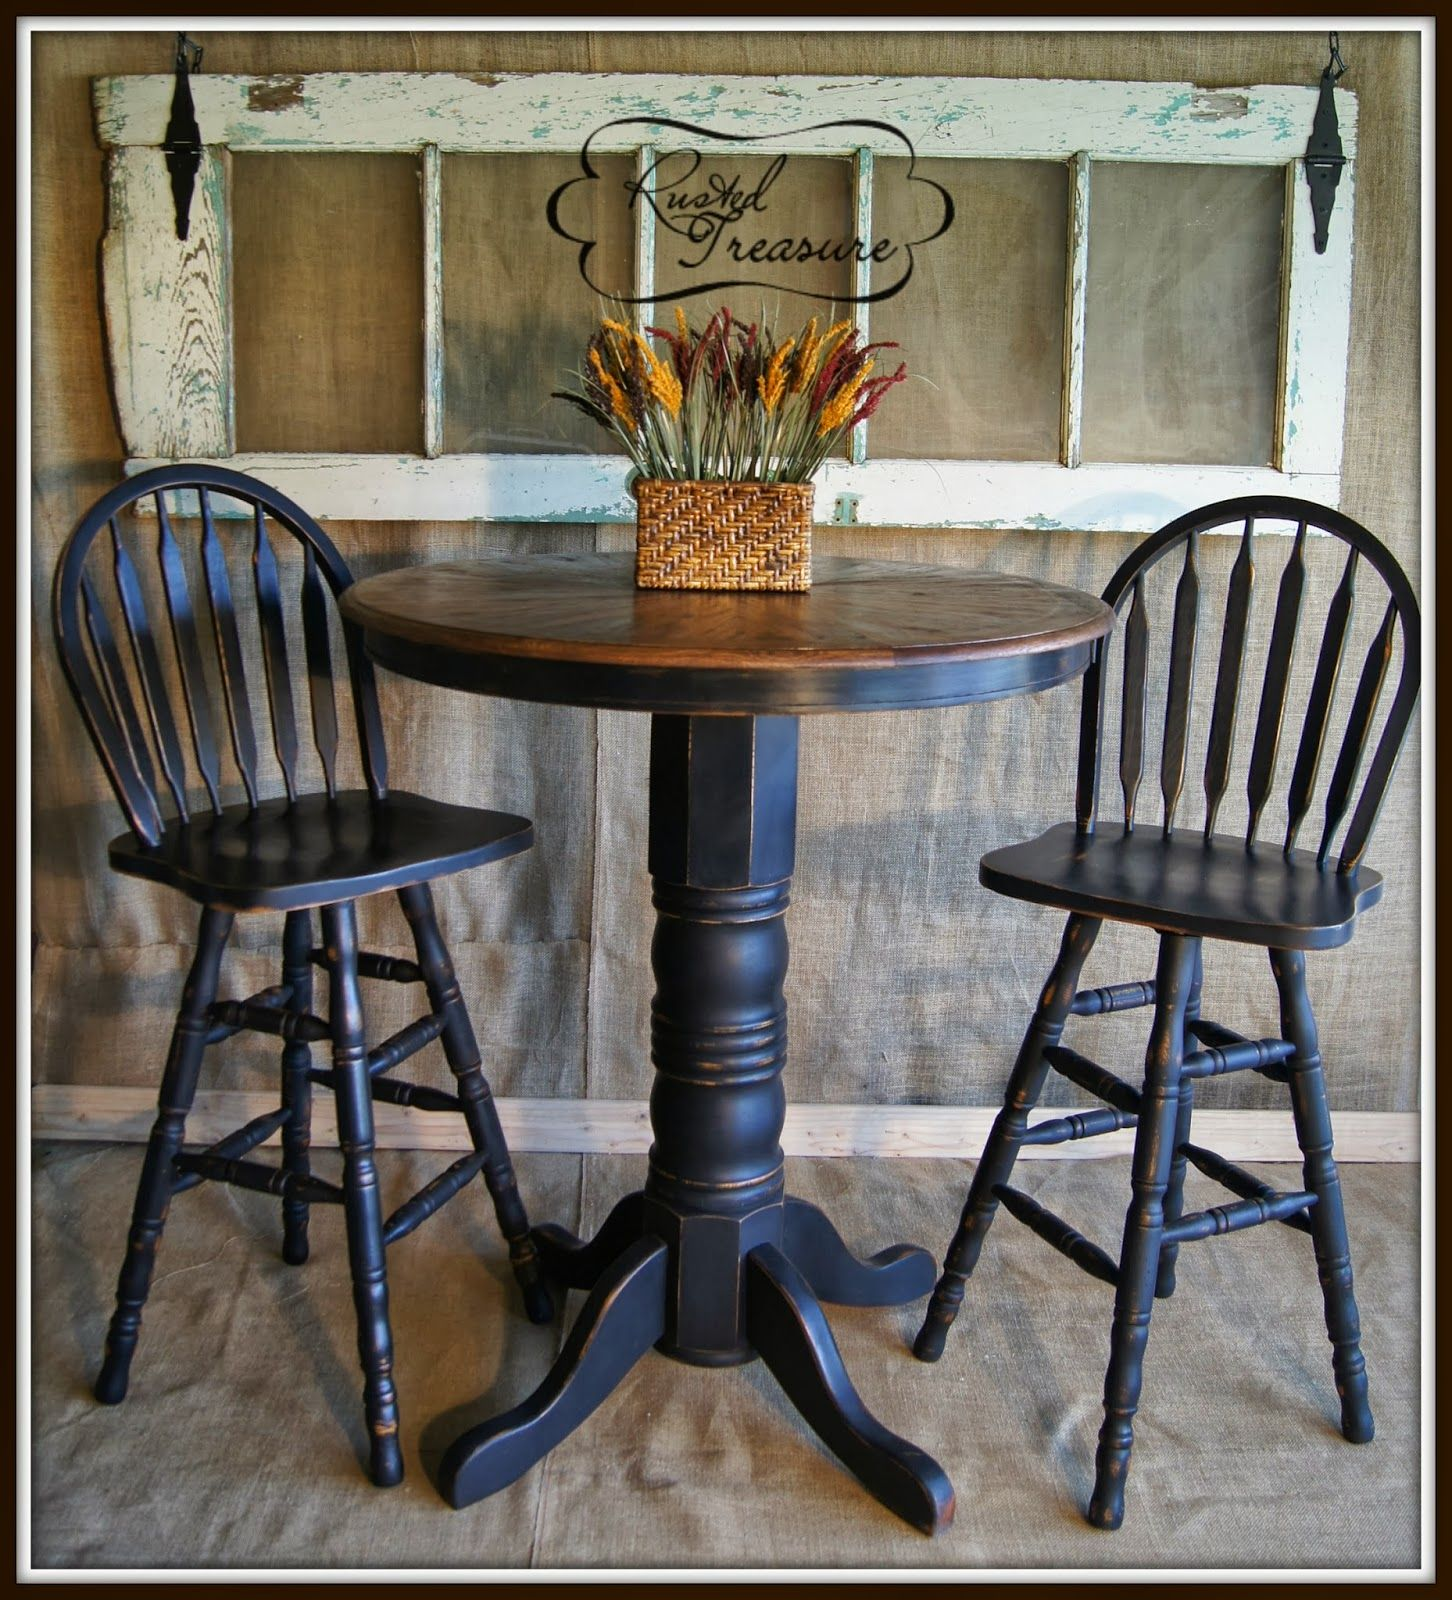 bar top kitchen tables Distressed Bar Top Table and Chairs Before and After